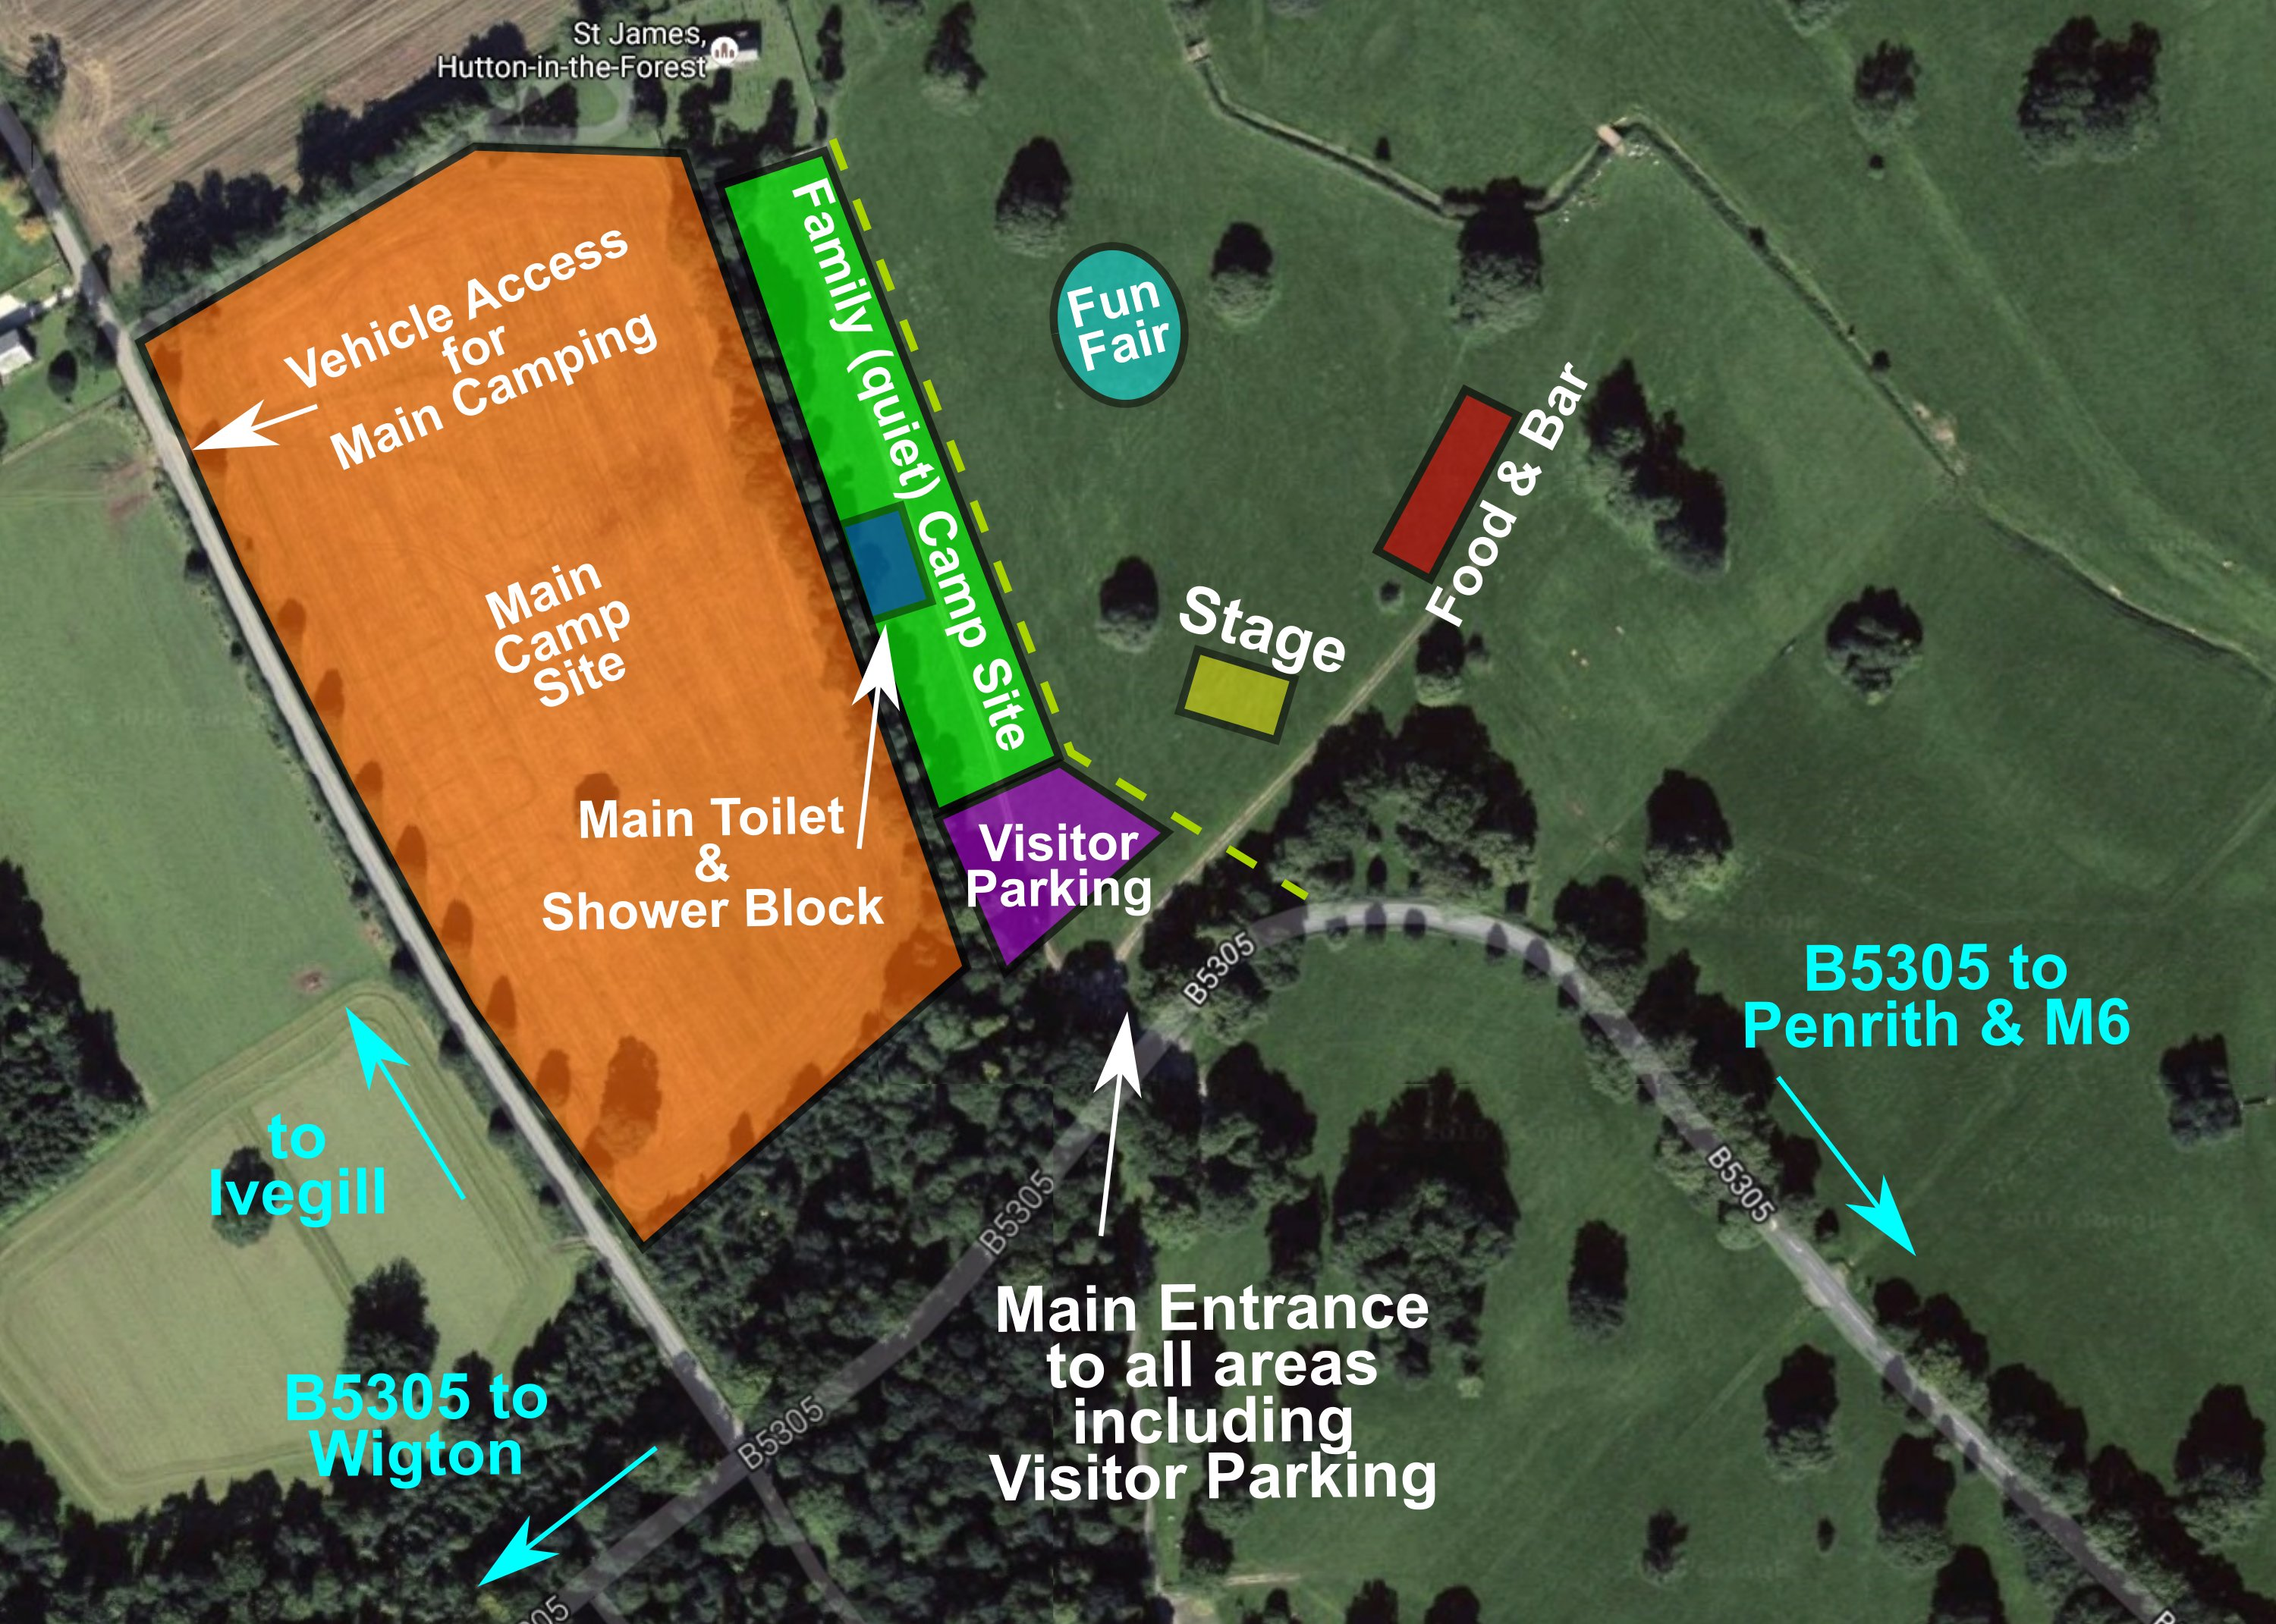 2017 Penrith site map